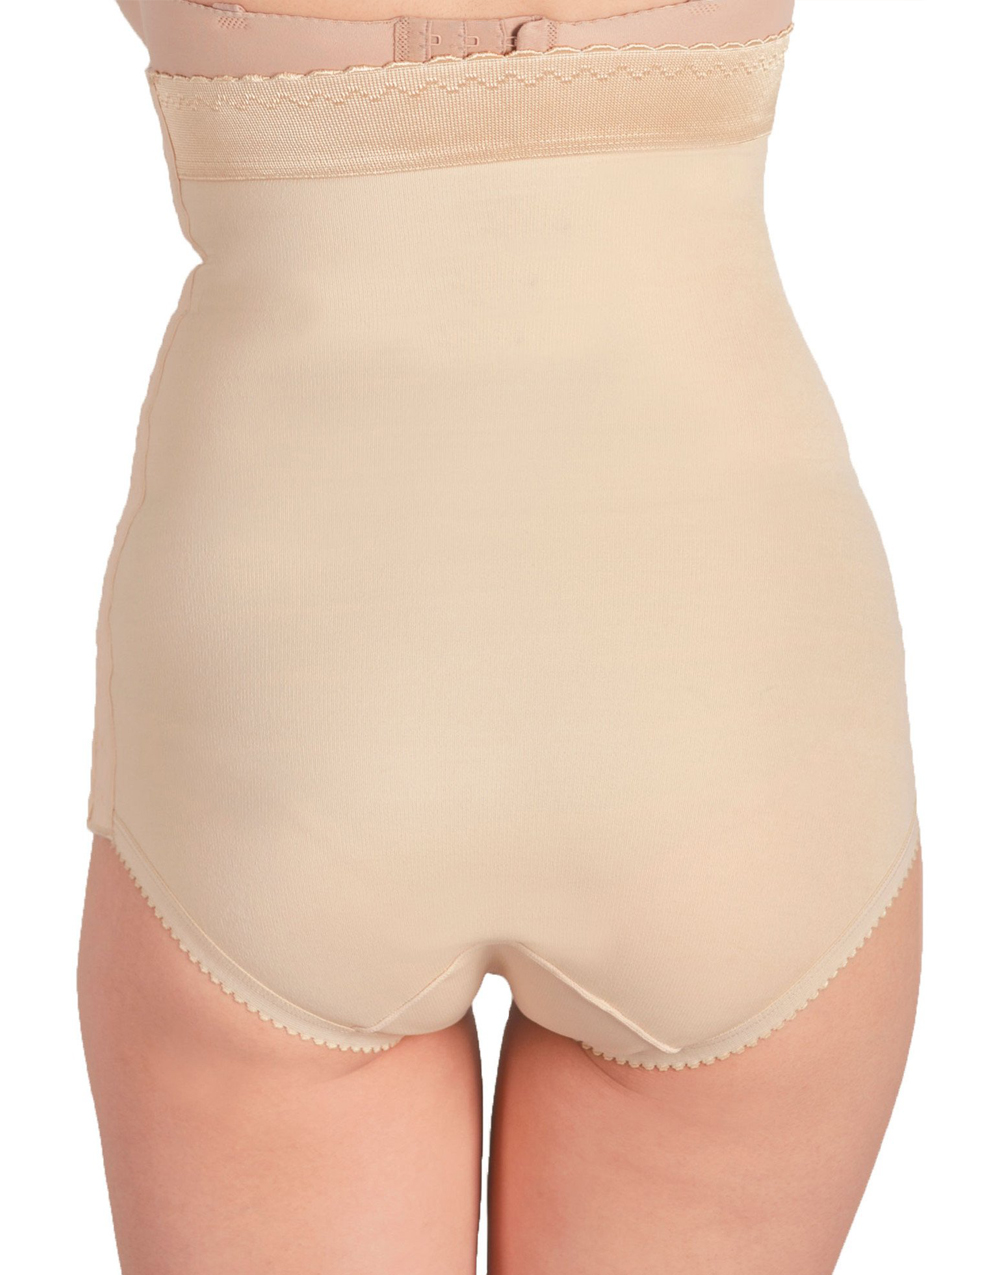 Postpartum Ultra Bikini in Nude by Wink Shapewear | MEDIUM